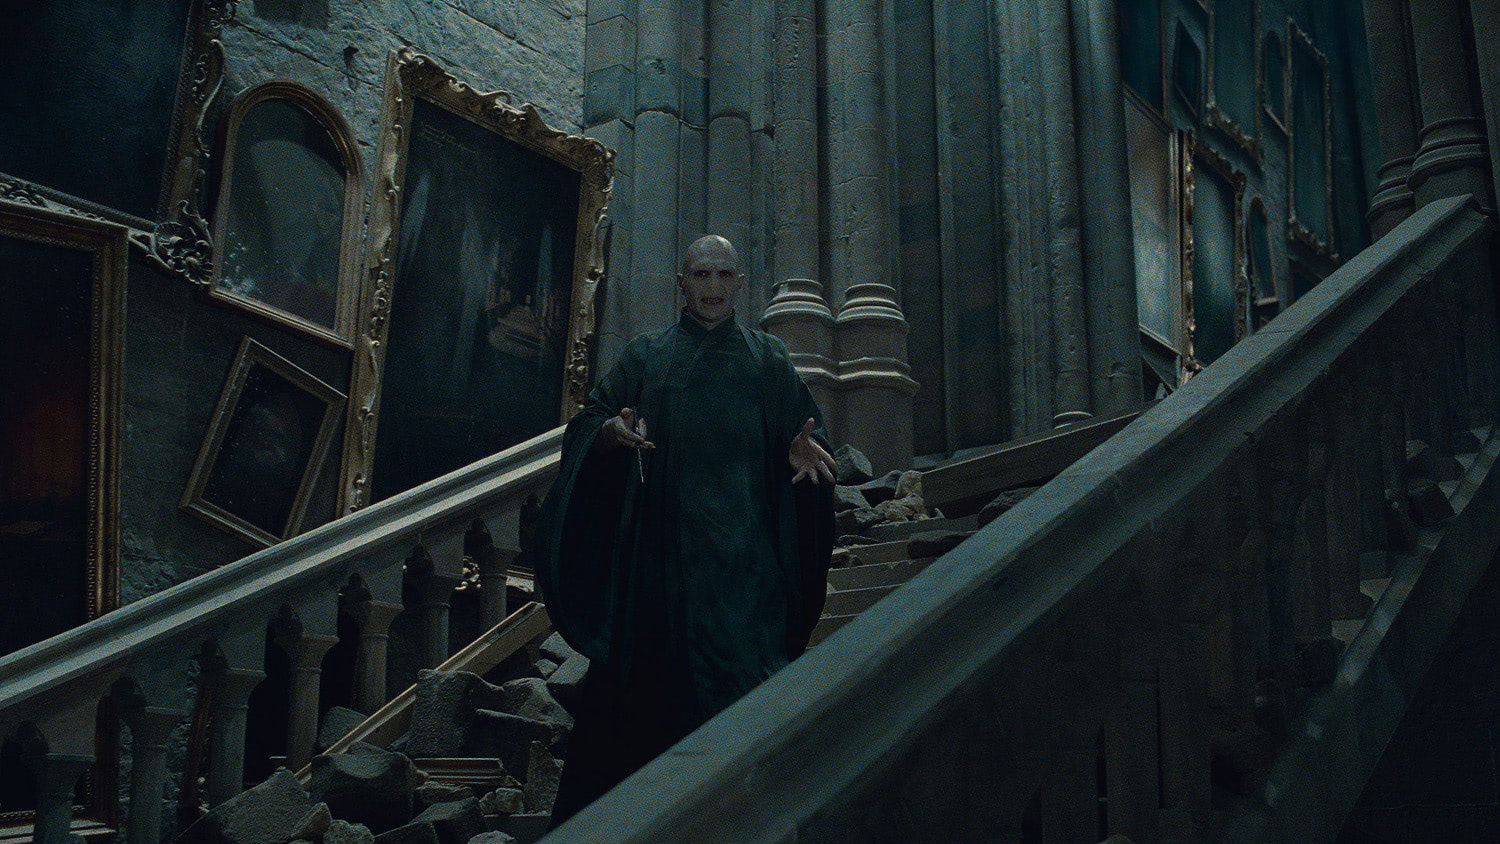 Voldemort on a staircase